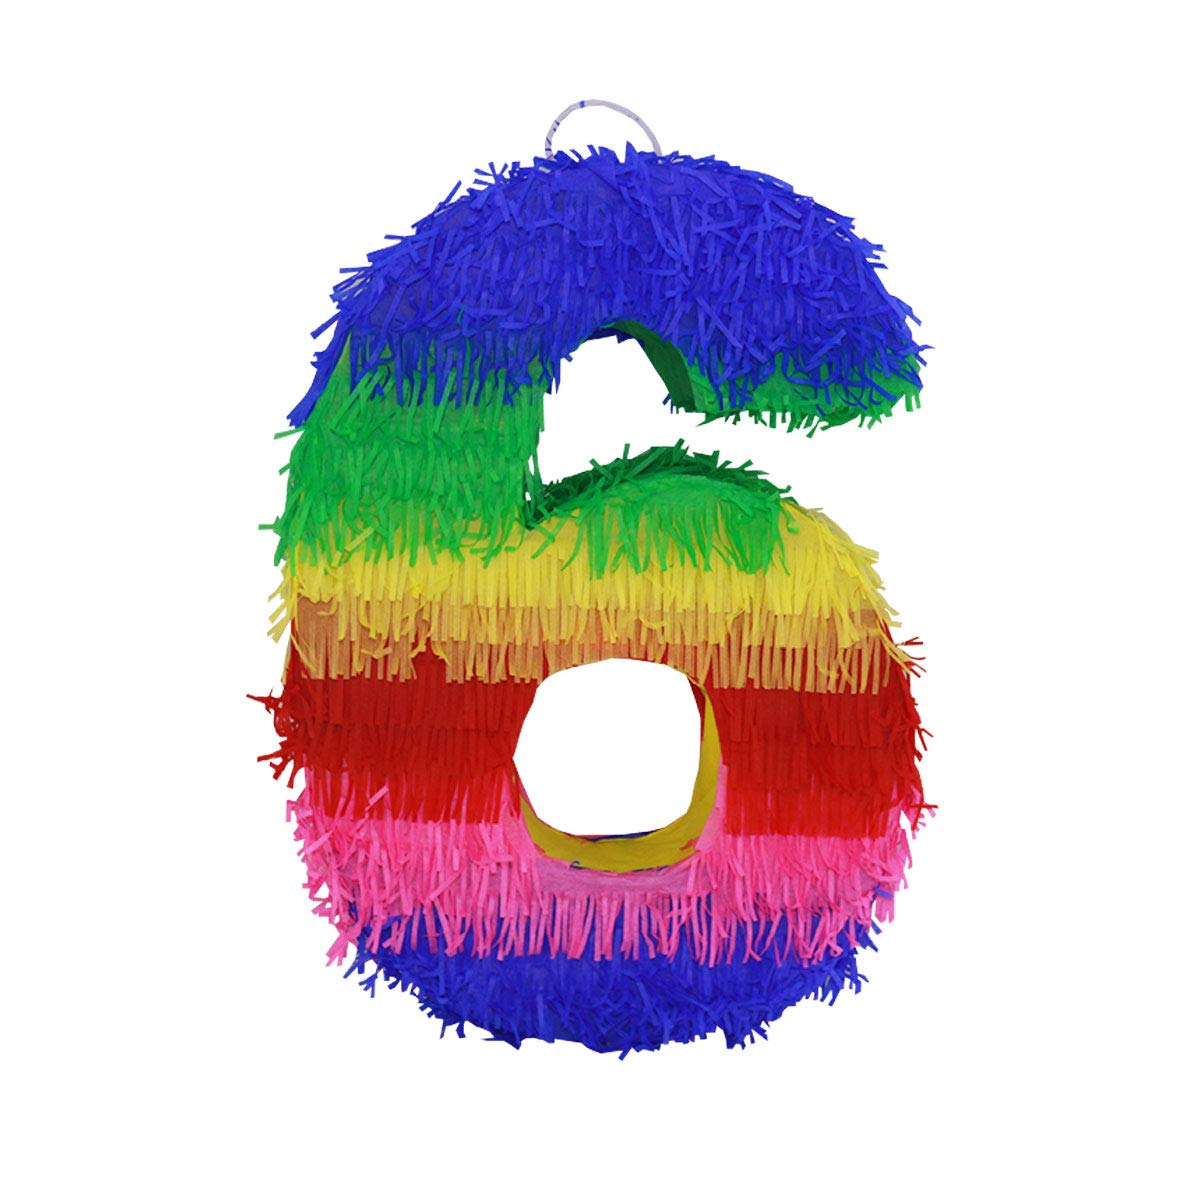 Lytio Number 6 Multicolor Party Small Pinata for 6th Birthday, Centerpiece Decoration, Anniversary, Décor, Photo Prop, Party Supplies, Mexican Piñata Game by LYTIO